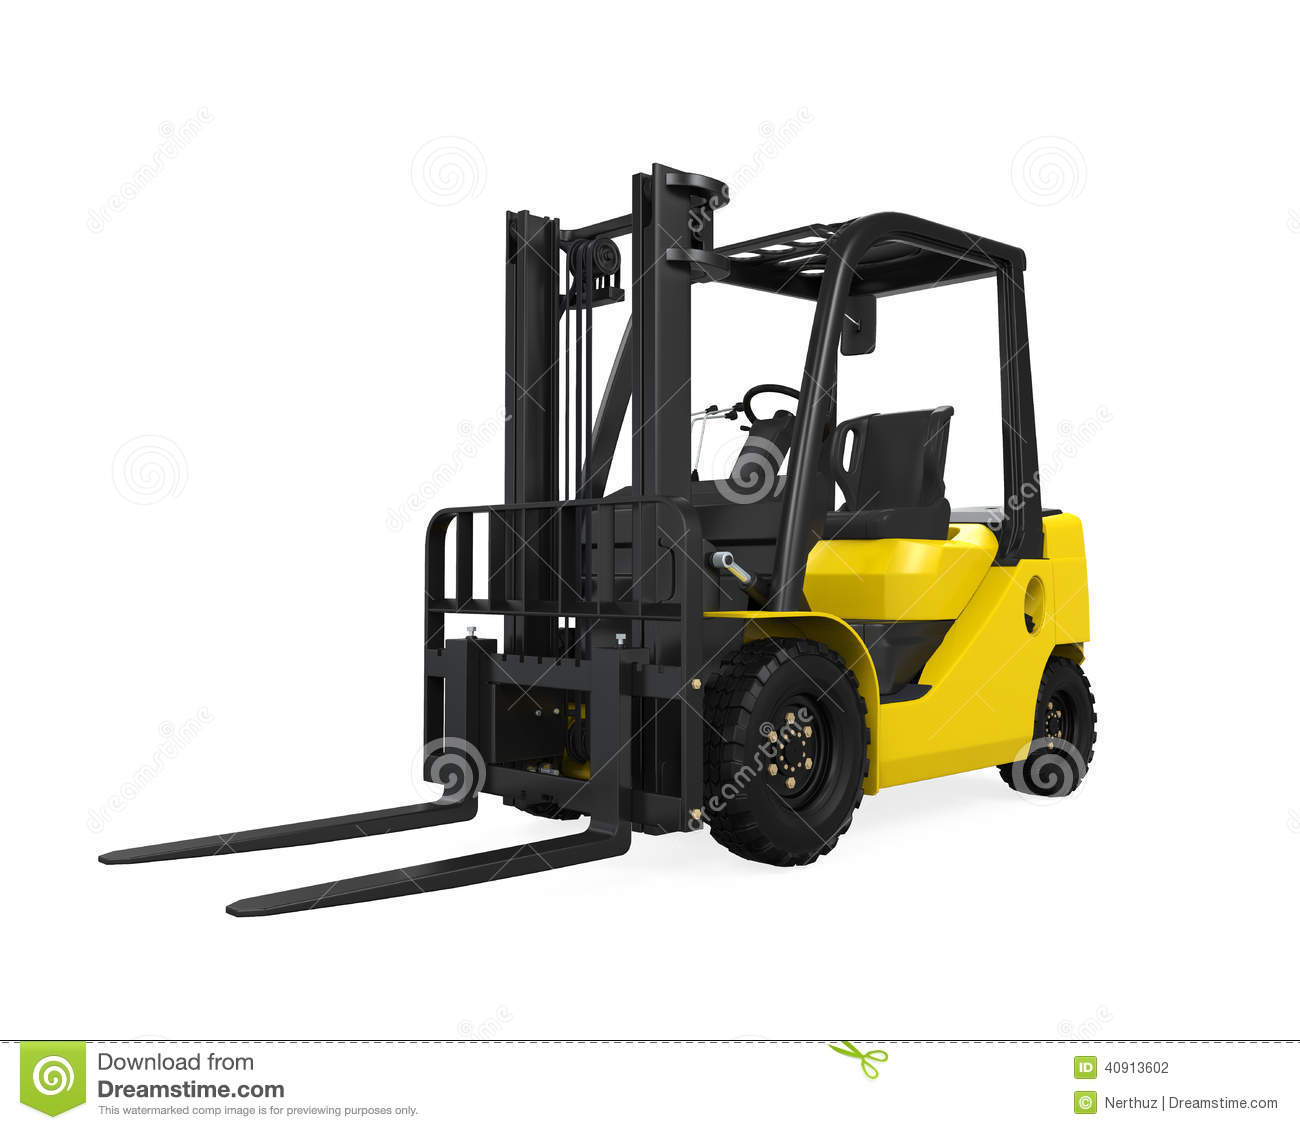 Download Forklift Truck stock photo. Image of activity, metal - 40913602